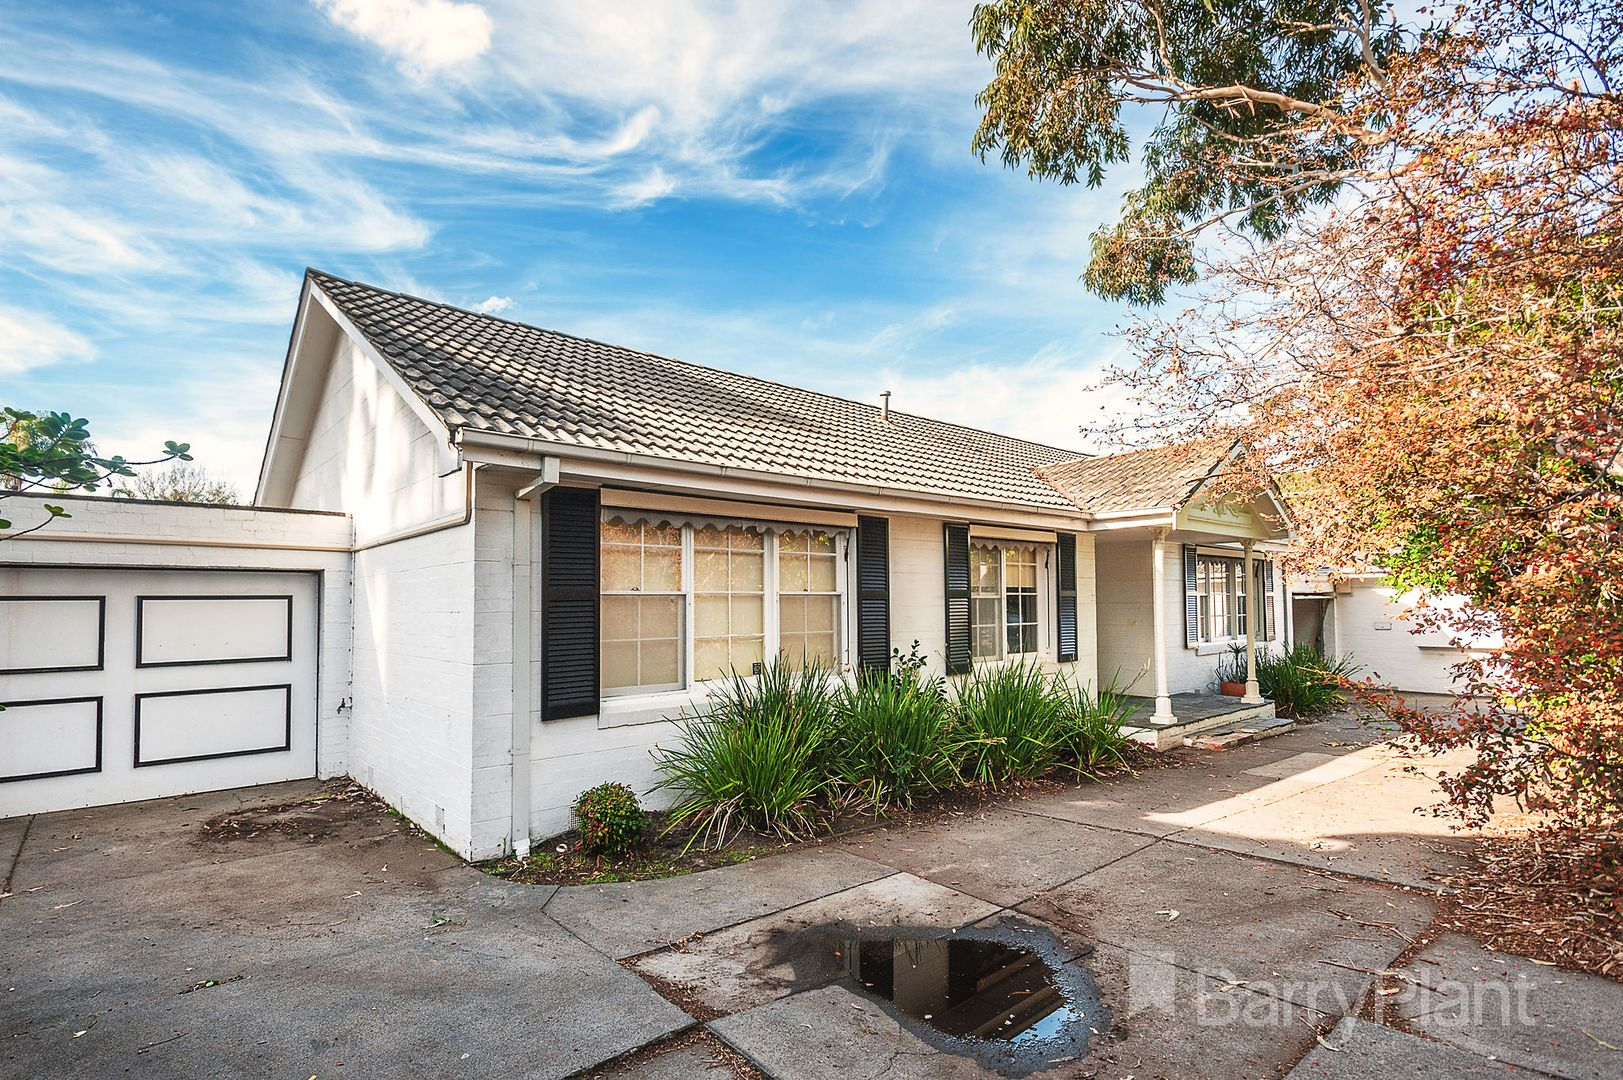 2/447 Beach Road, Beaumaris VIC 3193, Image 0